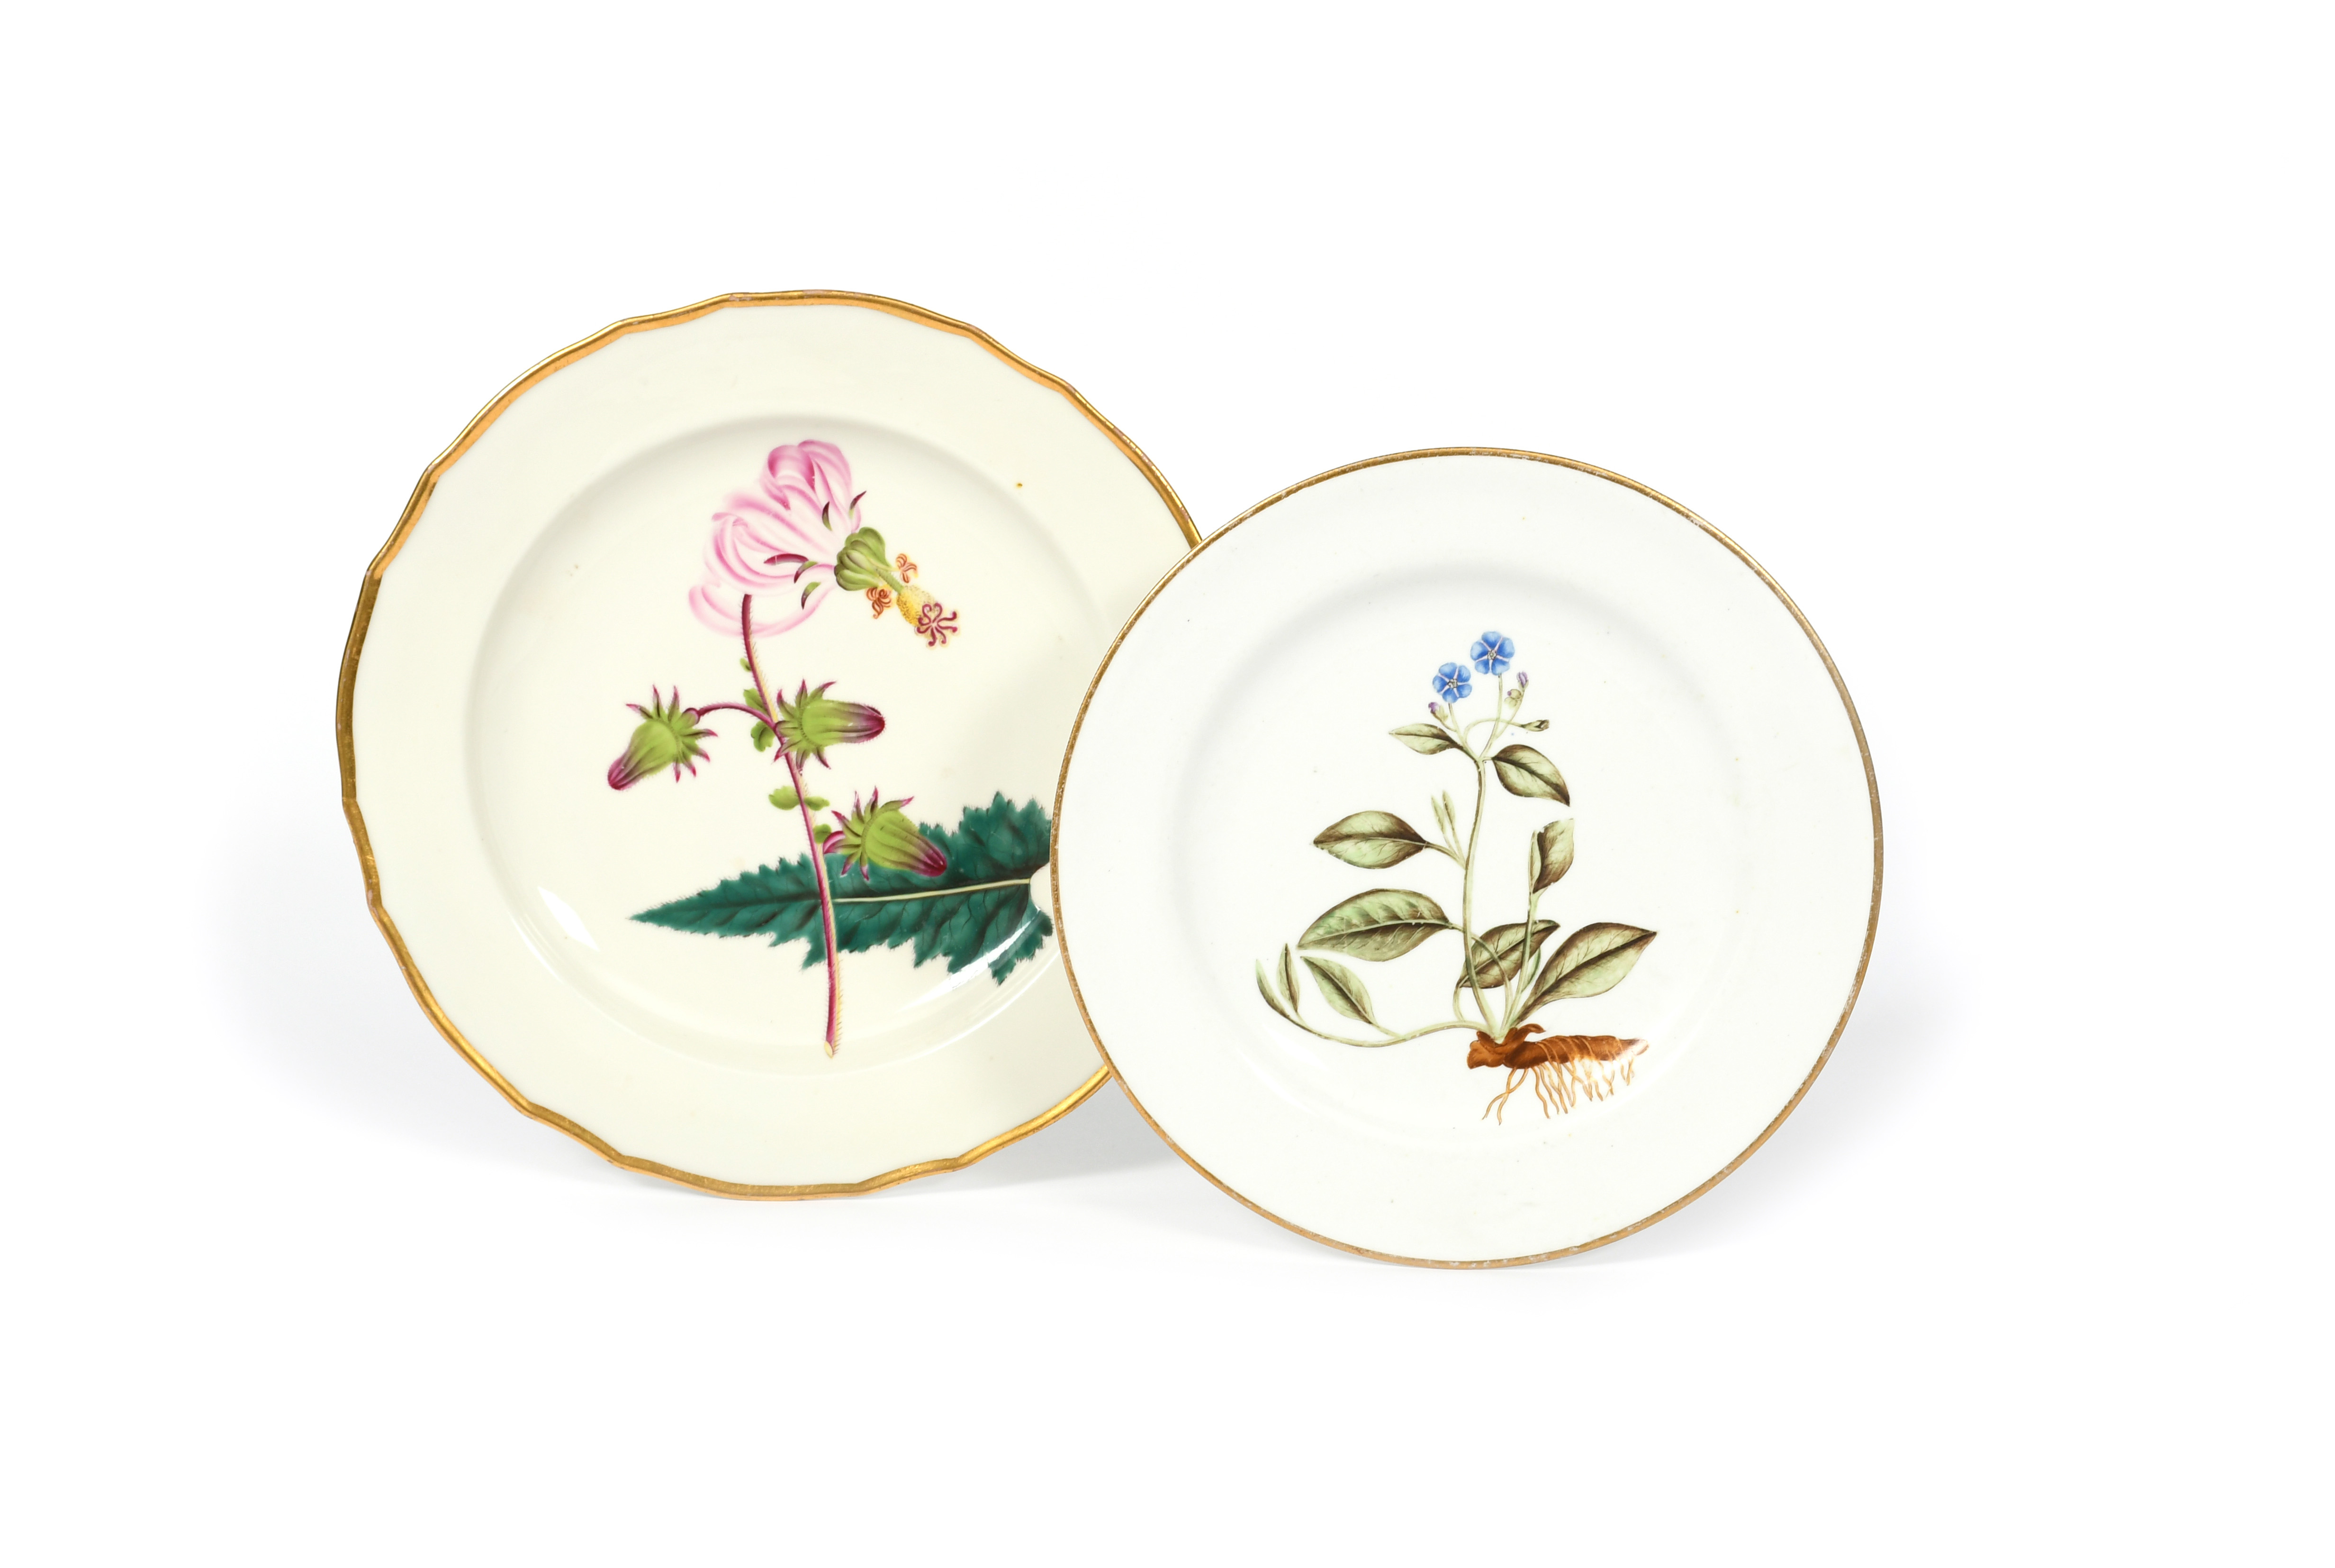 Two English porcelain botanical plates c.1790-1800, one Derby and painted with a specimen of - Image 2 of 2